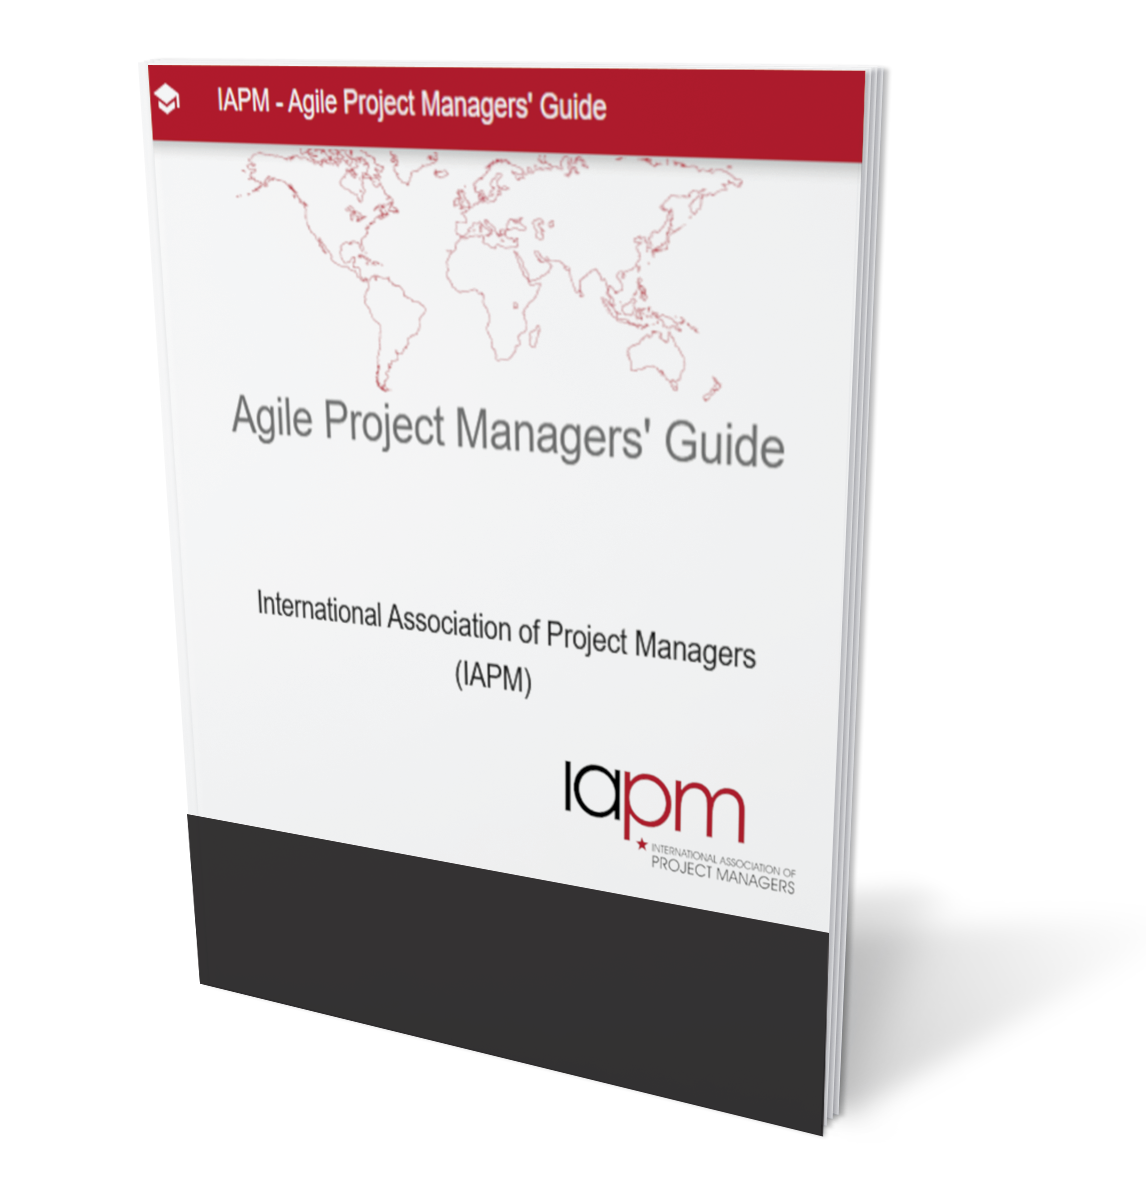 Agile Project Managers' Guide (IAPM): Scrum, Kanban and Extreme Programming